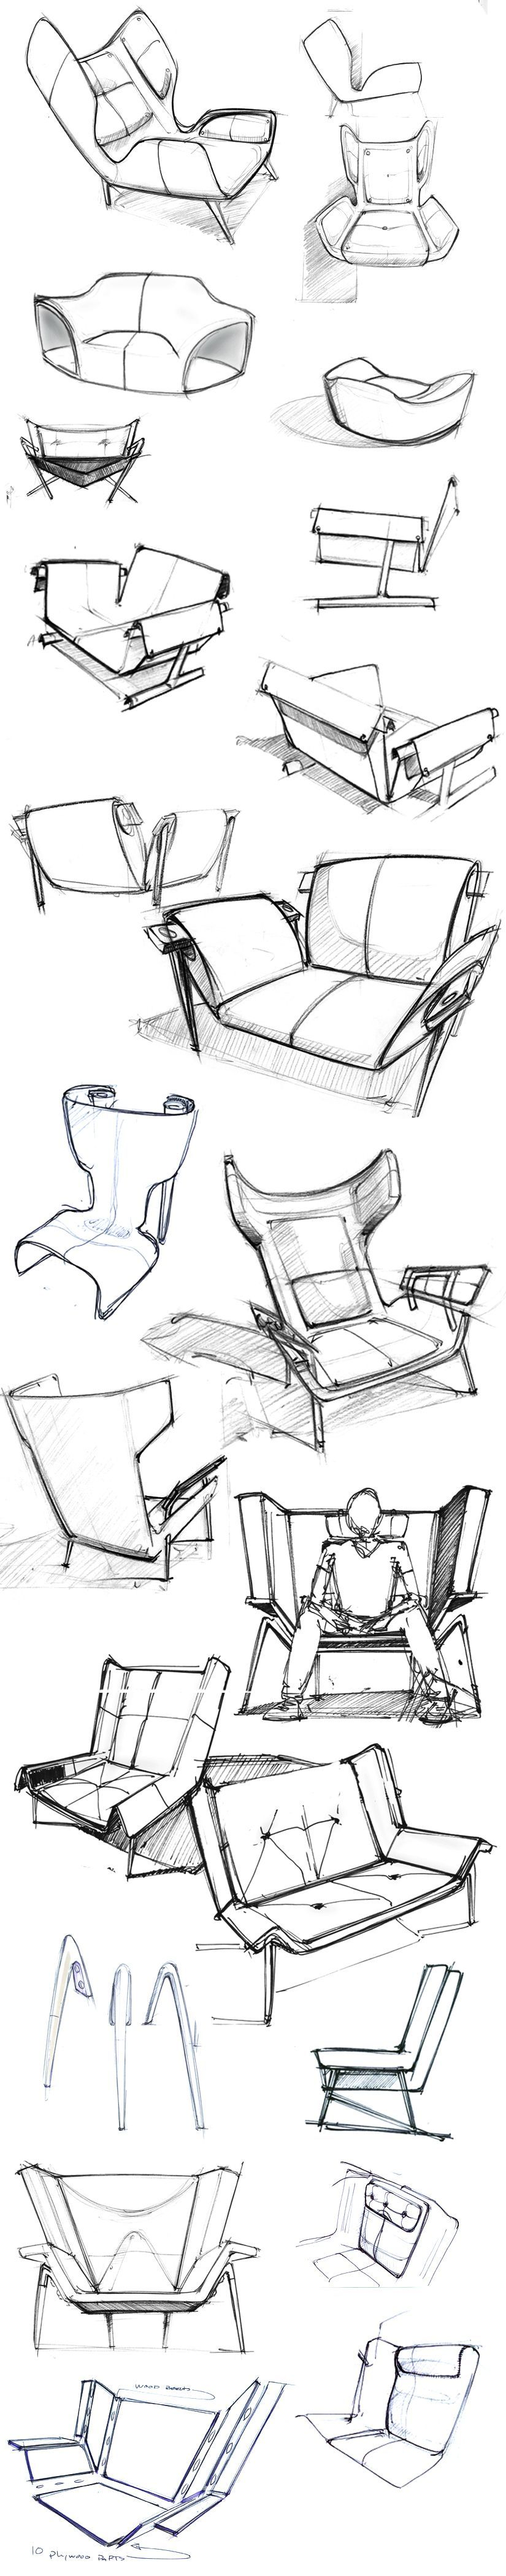 sketches of the Deca Lounge Chair by Larry Parker pinterest